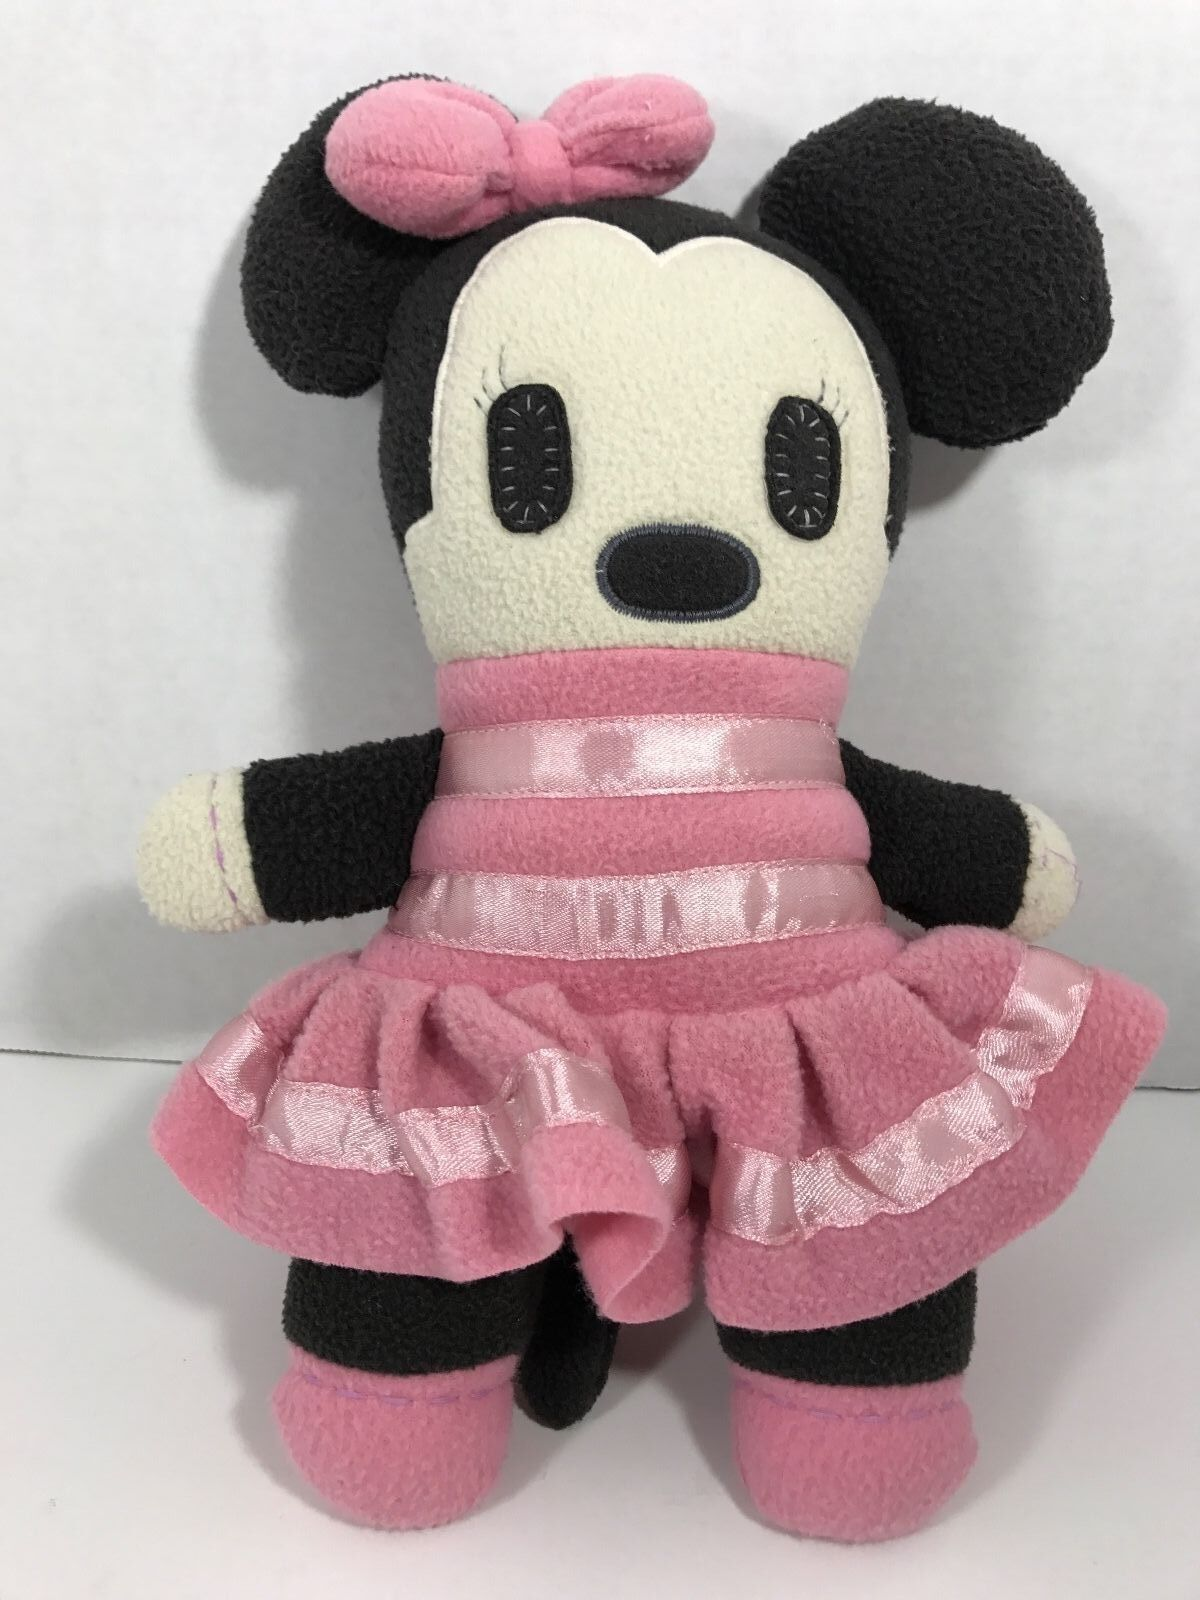 "Disney Minnie Mouse Pook-a-Looz Plush Doll 12"" Disney Park"